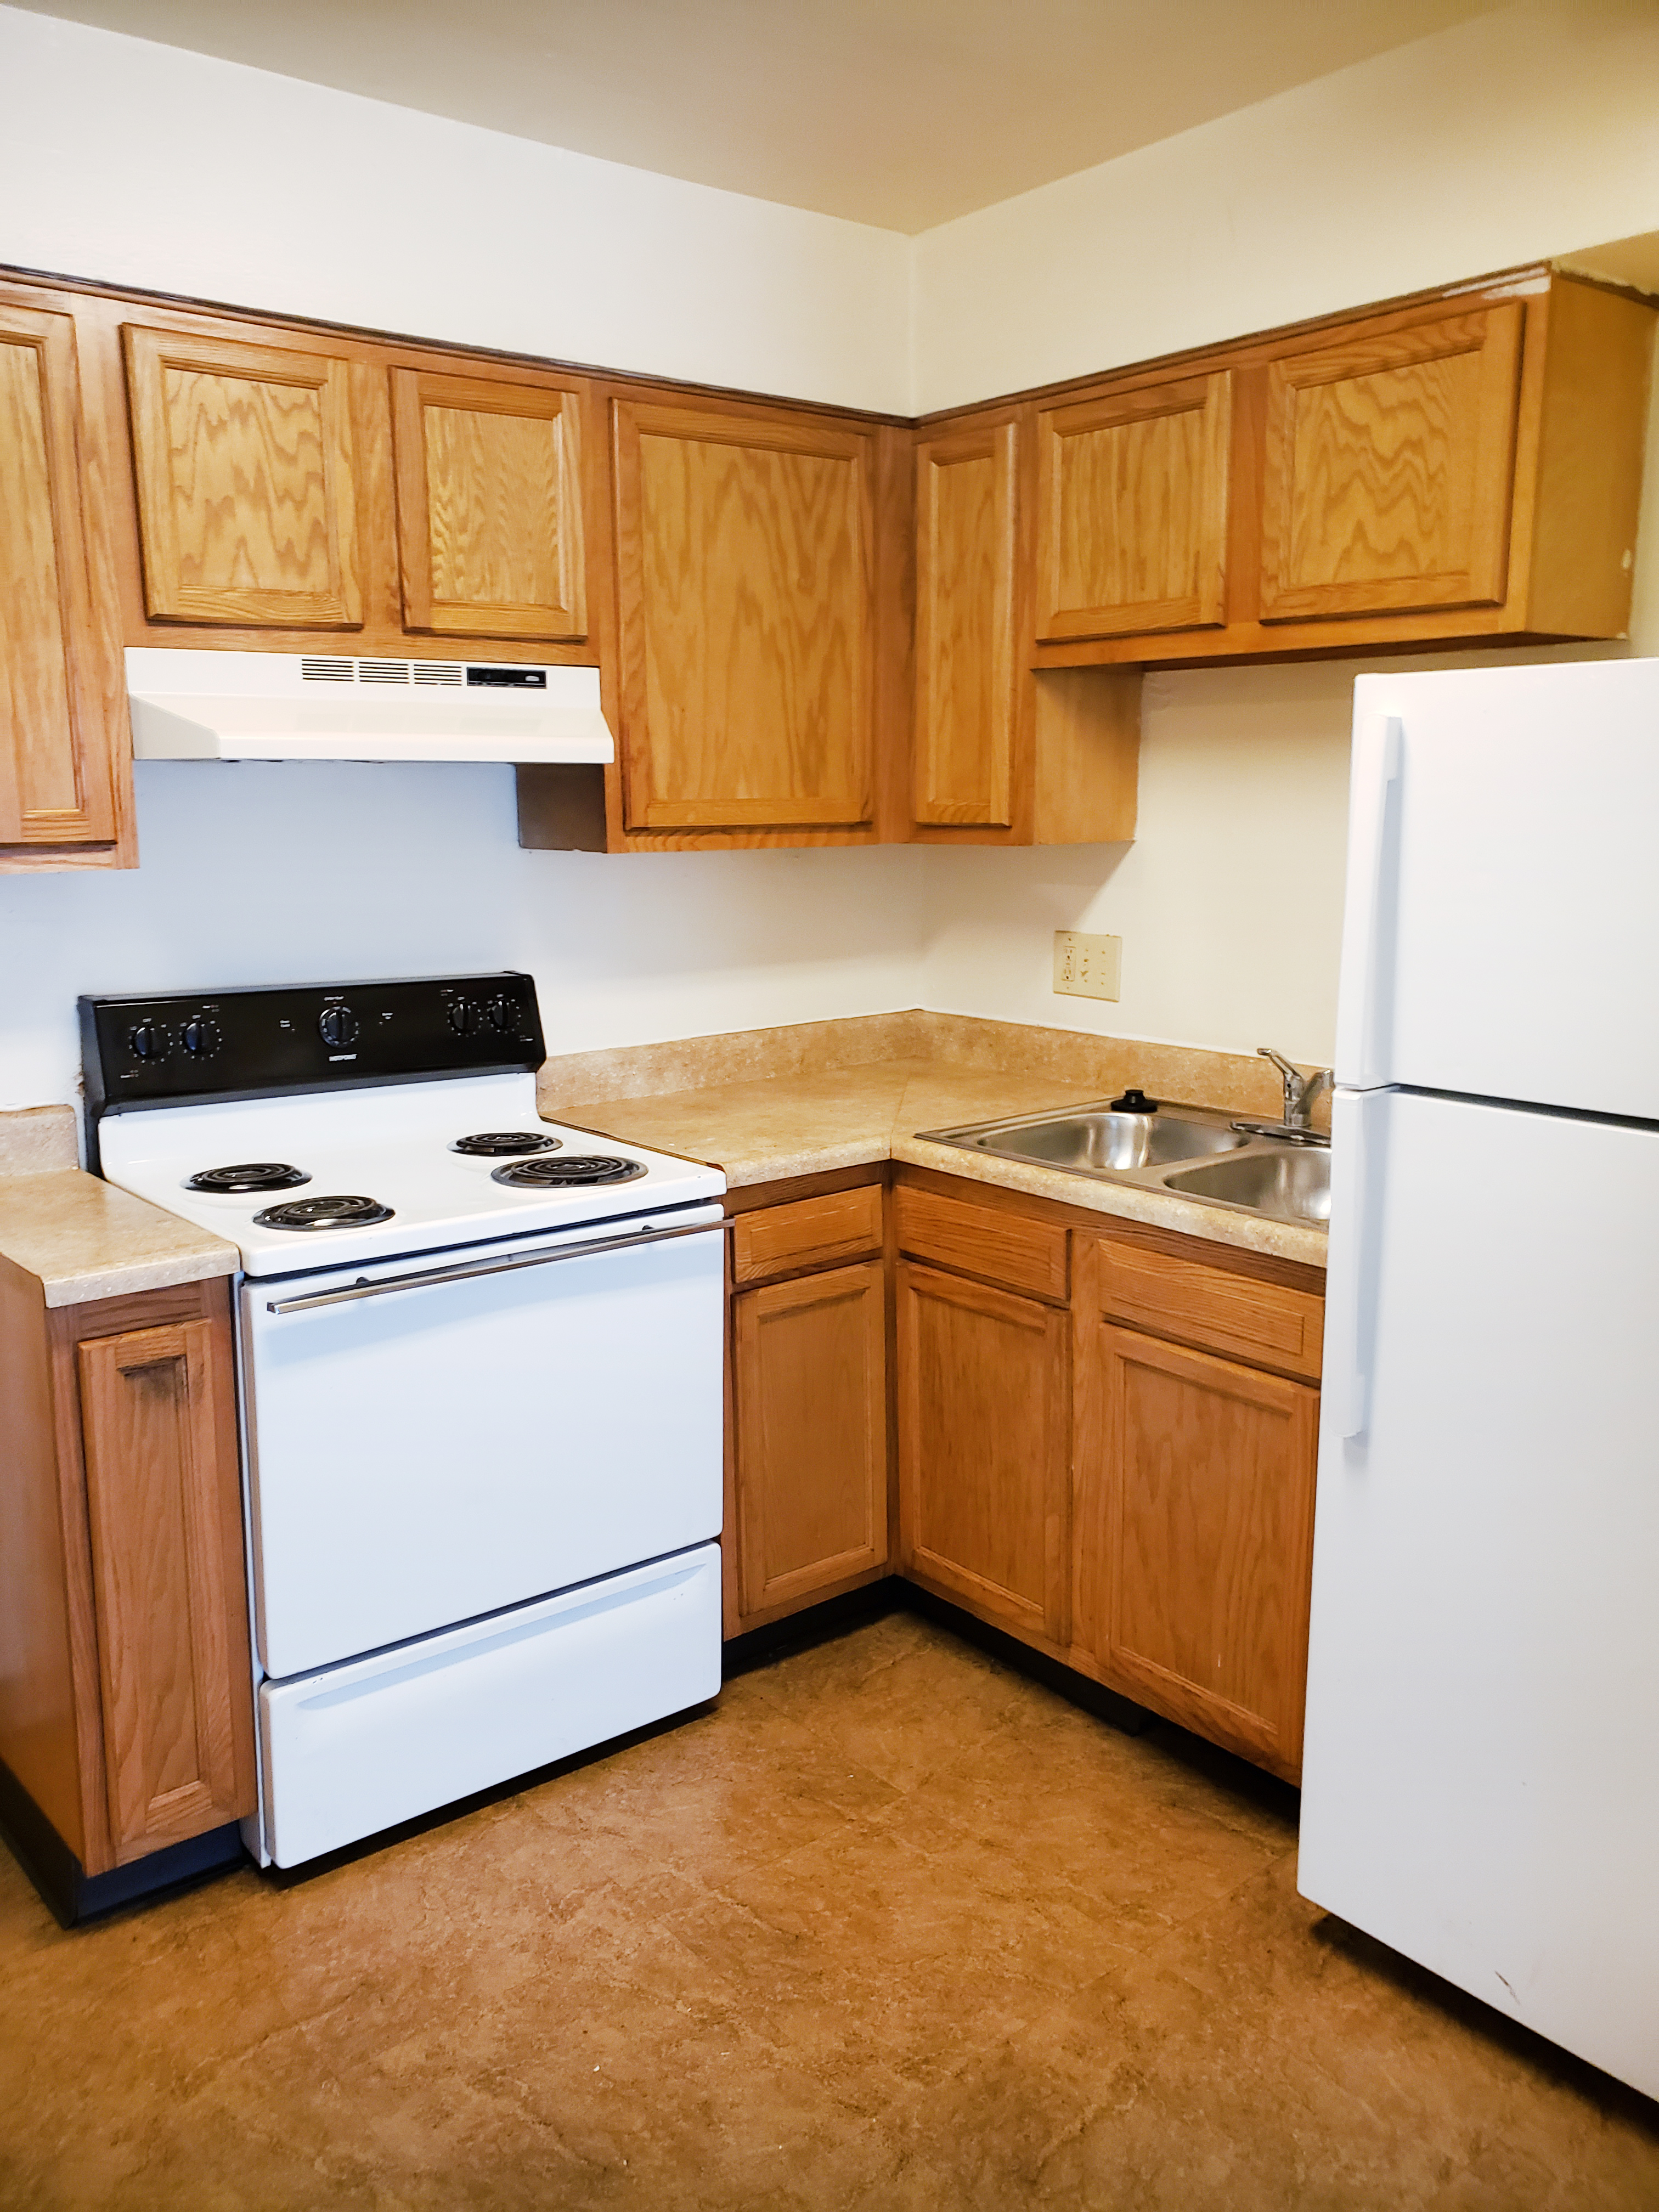 Eagle Ridge (Affordable Housing; Income Limit Restrictions Apply)